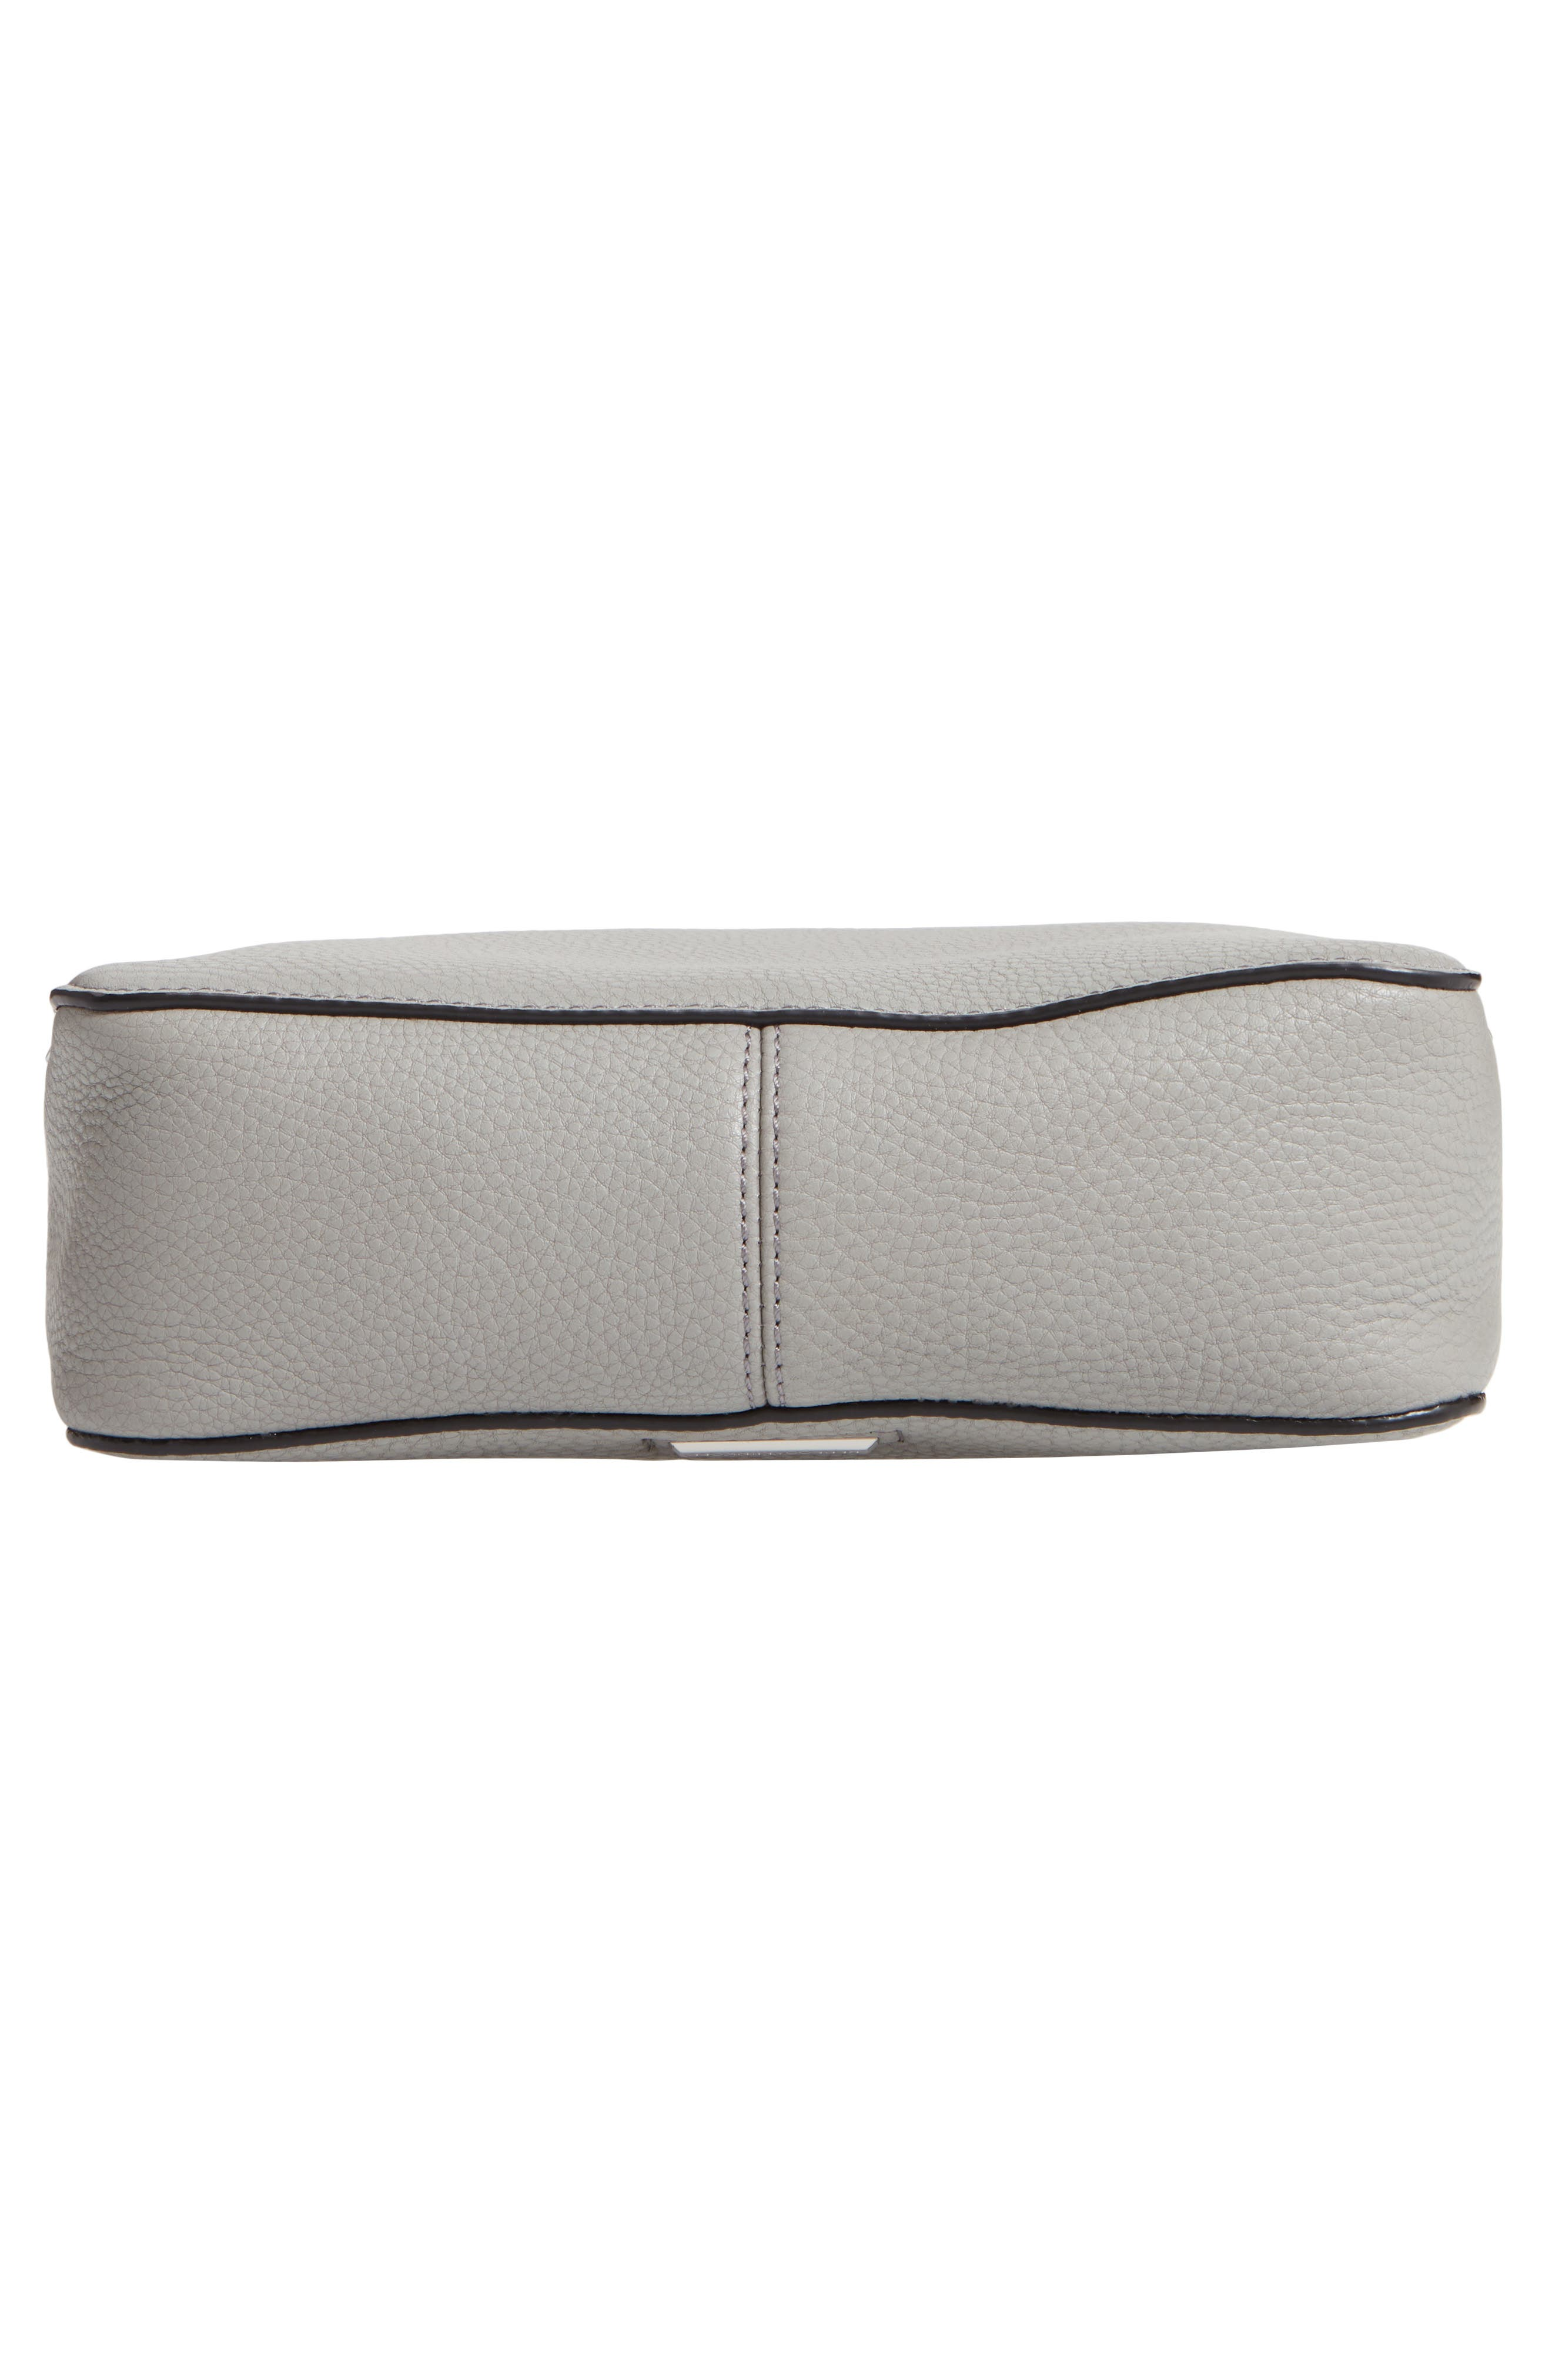 Small Studded Leather Feed Bag,                             Alternate thumbnail 7, color,                             GREY